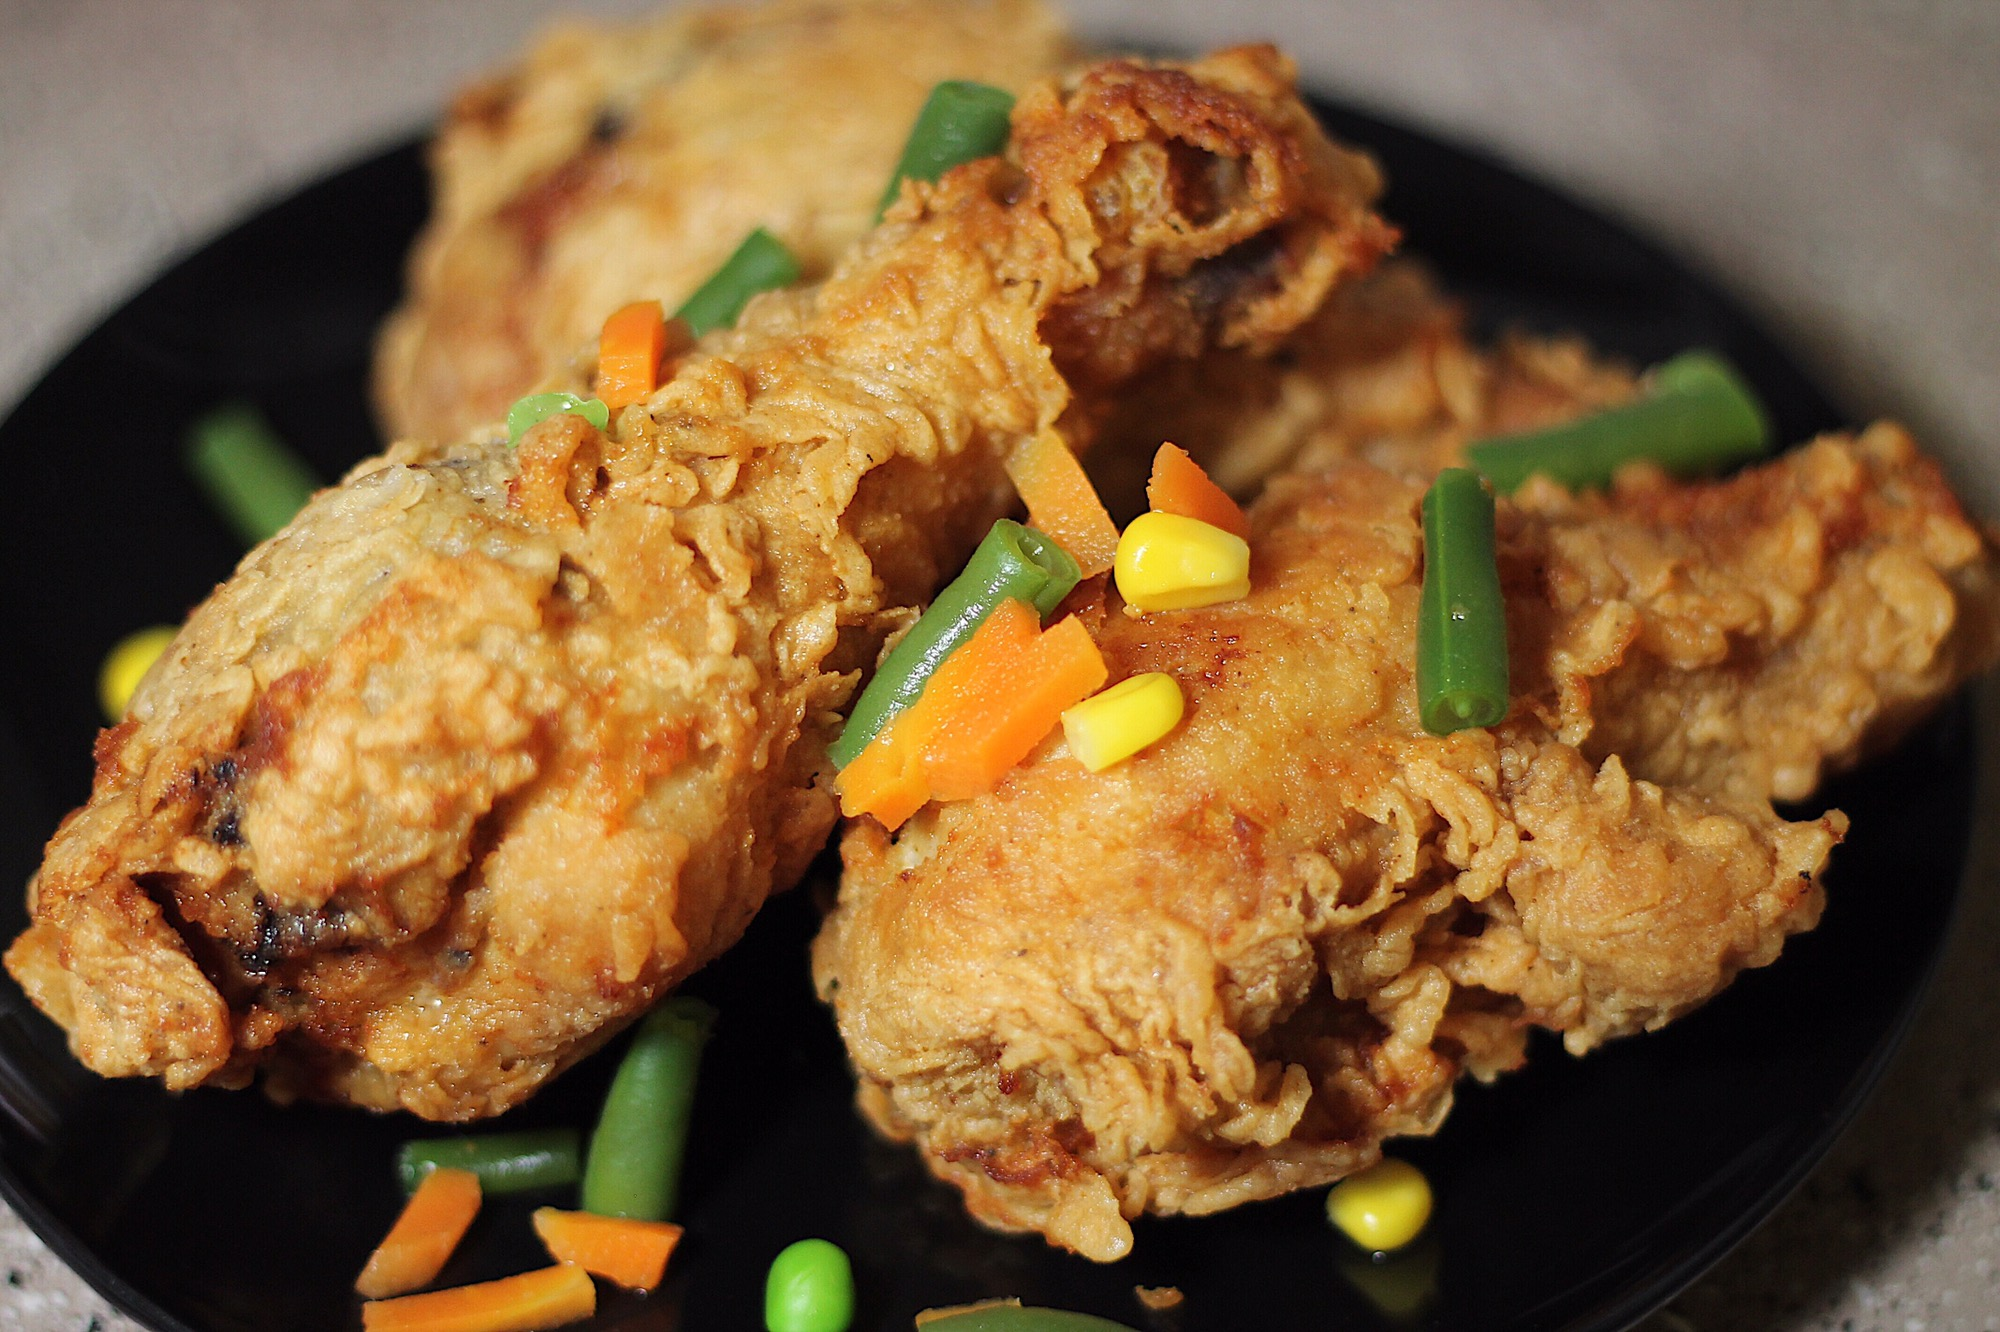 batter fried chicken legs recipe, best fried chicken recipe in the world, fried chicken thighs recipe, how do you fried chicken, ingredients of crispy fried chicken, how to make coating for fried chicken, fried chicken legs in deep fryer, homemade southern fried chicken,